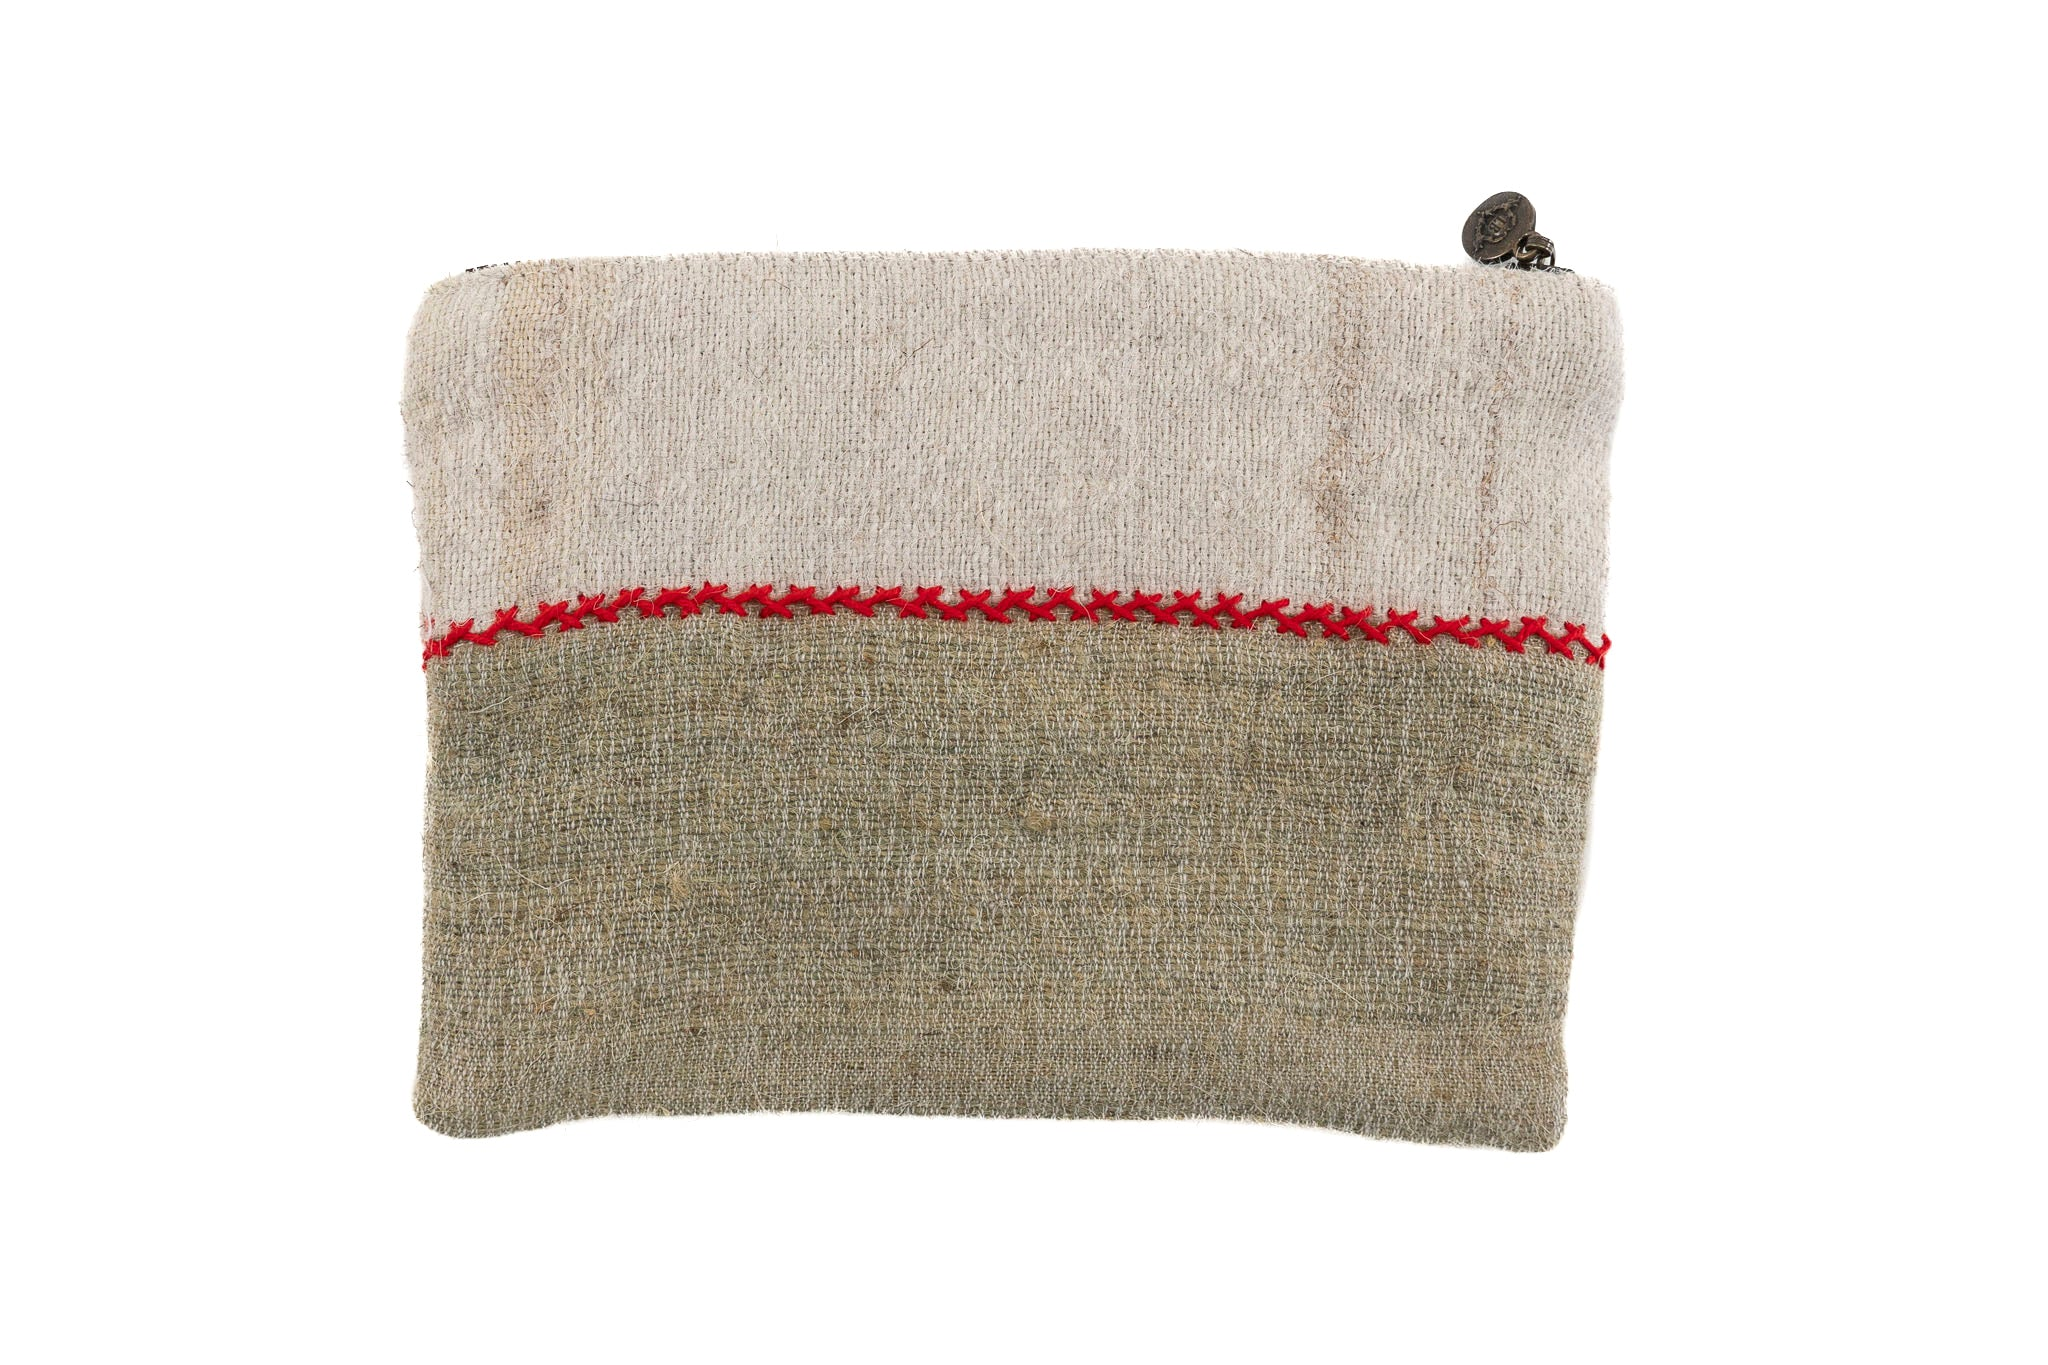 Bag: Handwoven wool, interior handwoven hemp lining - BG92